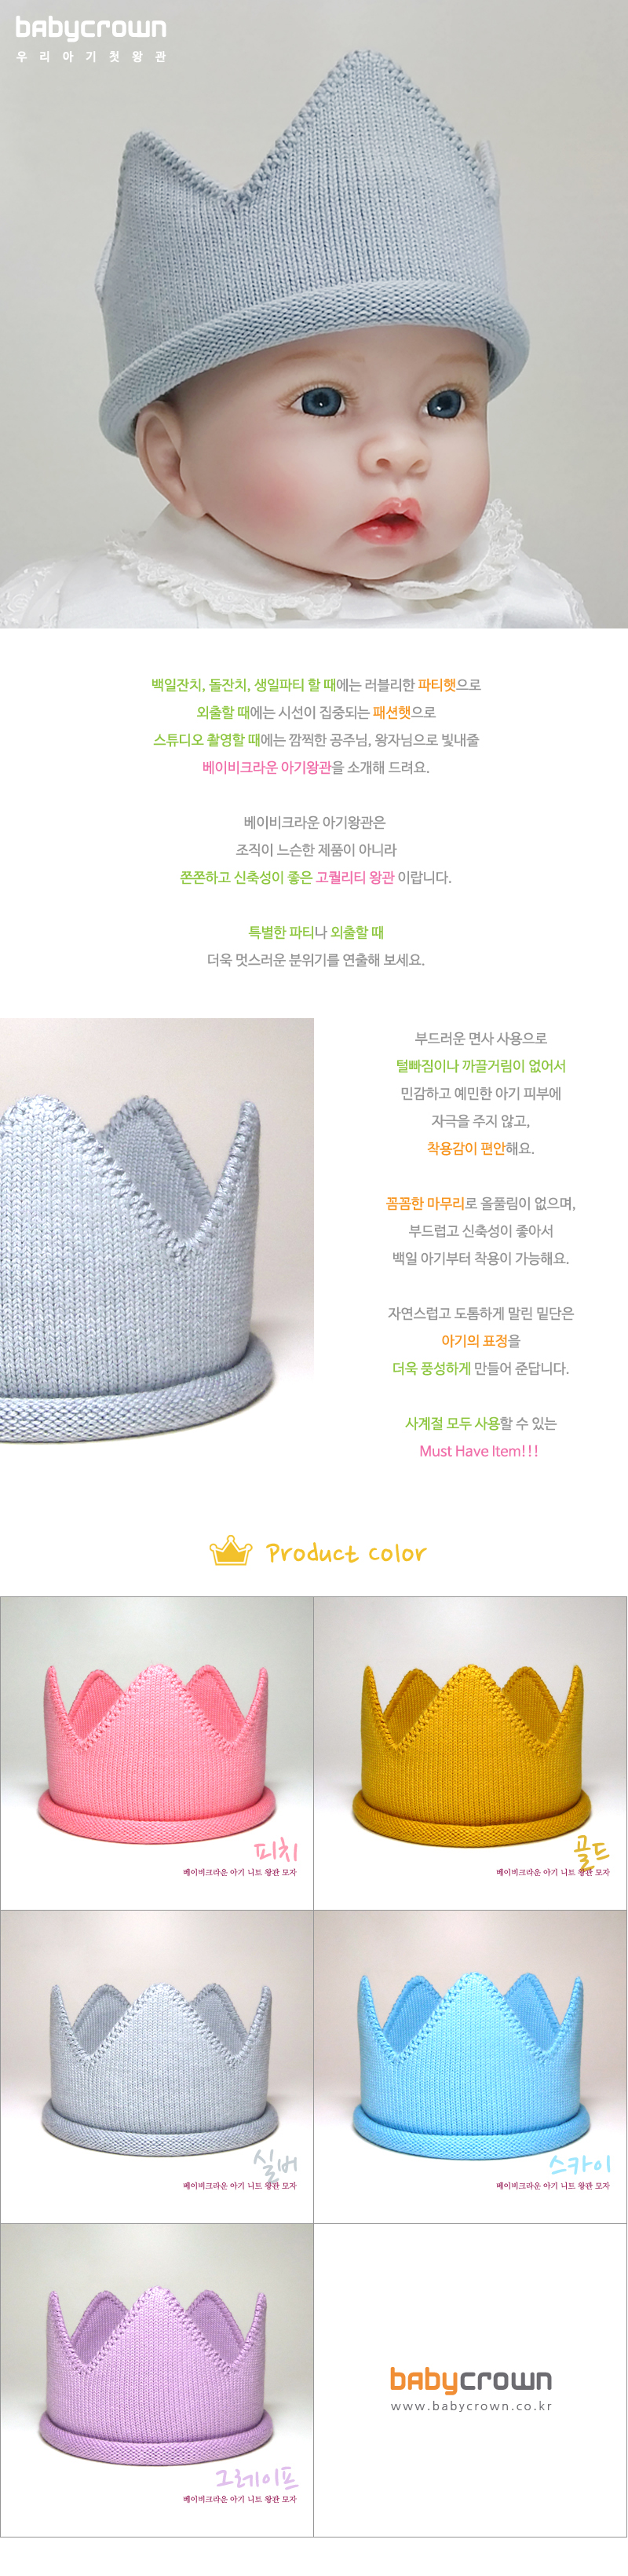 [ Babycrown ] [Baby Crown] baby knit crown cutie (silver)